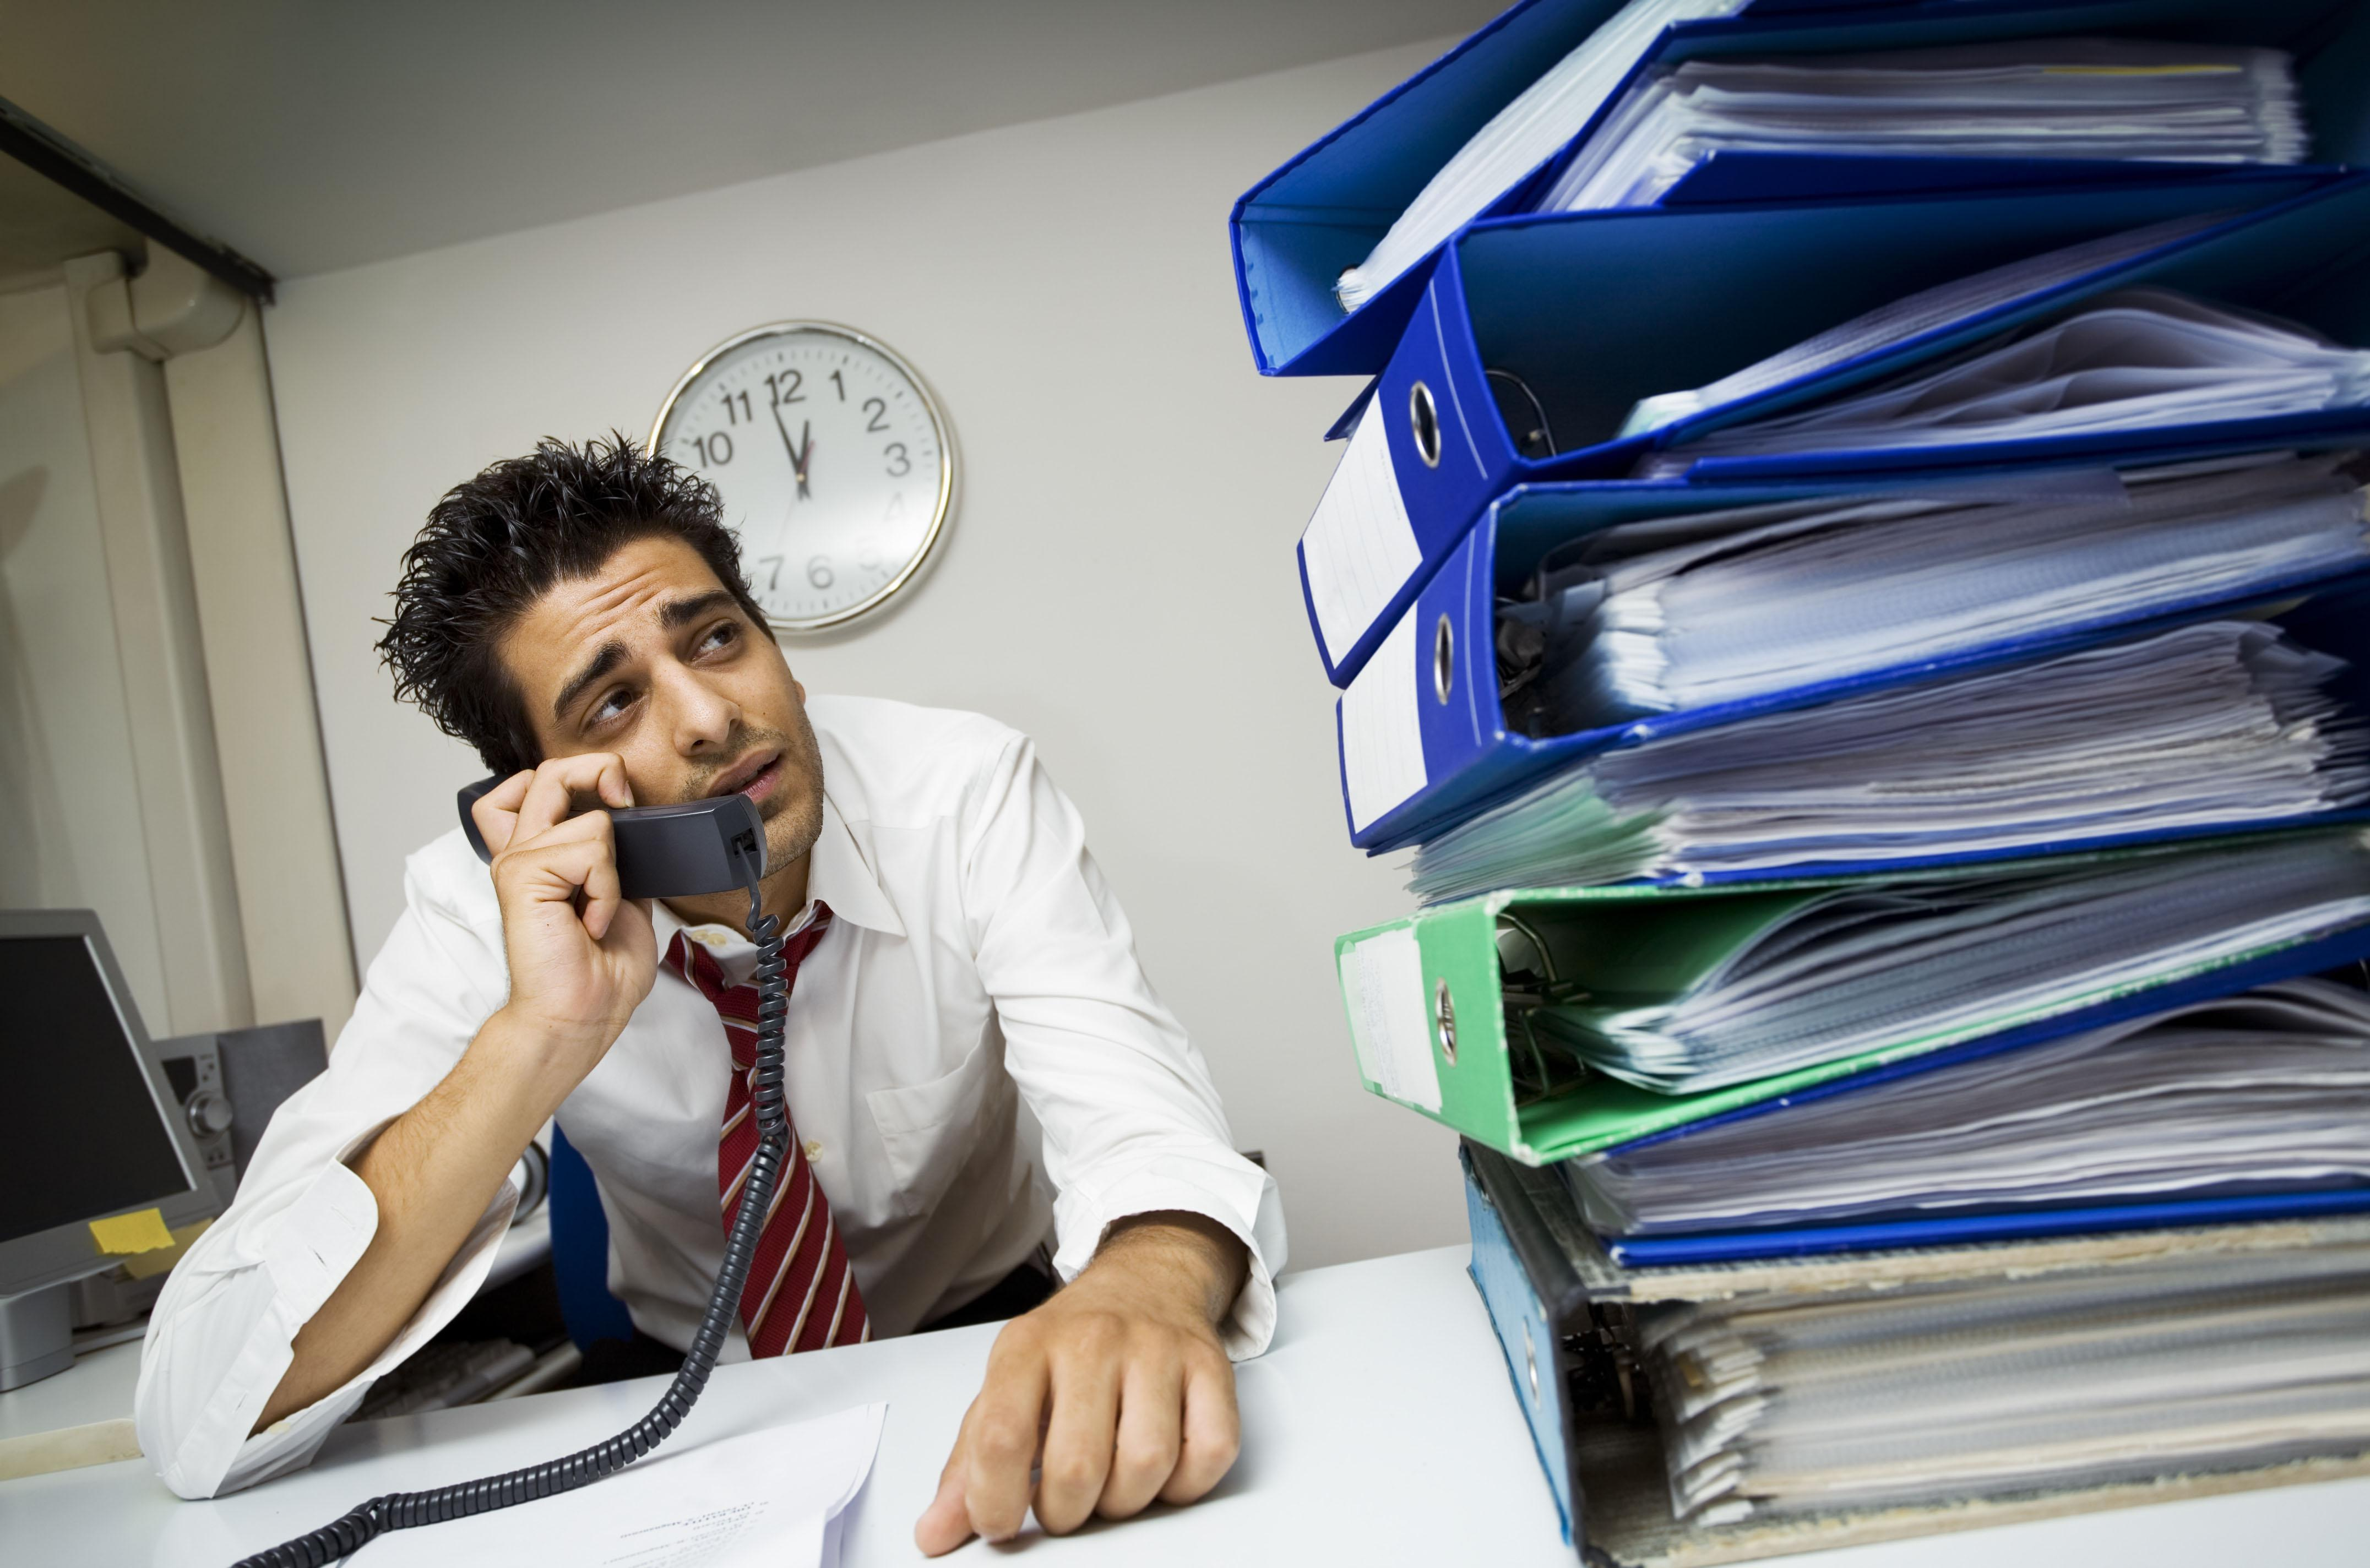 Millions of Brits 'overwhelmed' by heavy workload, busy social calendar and cash worries